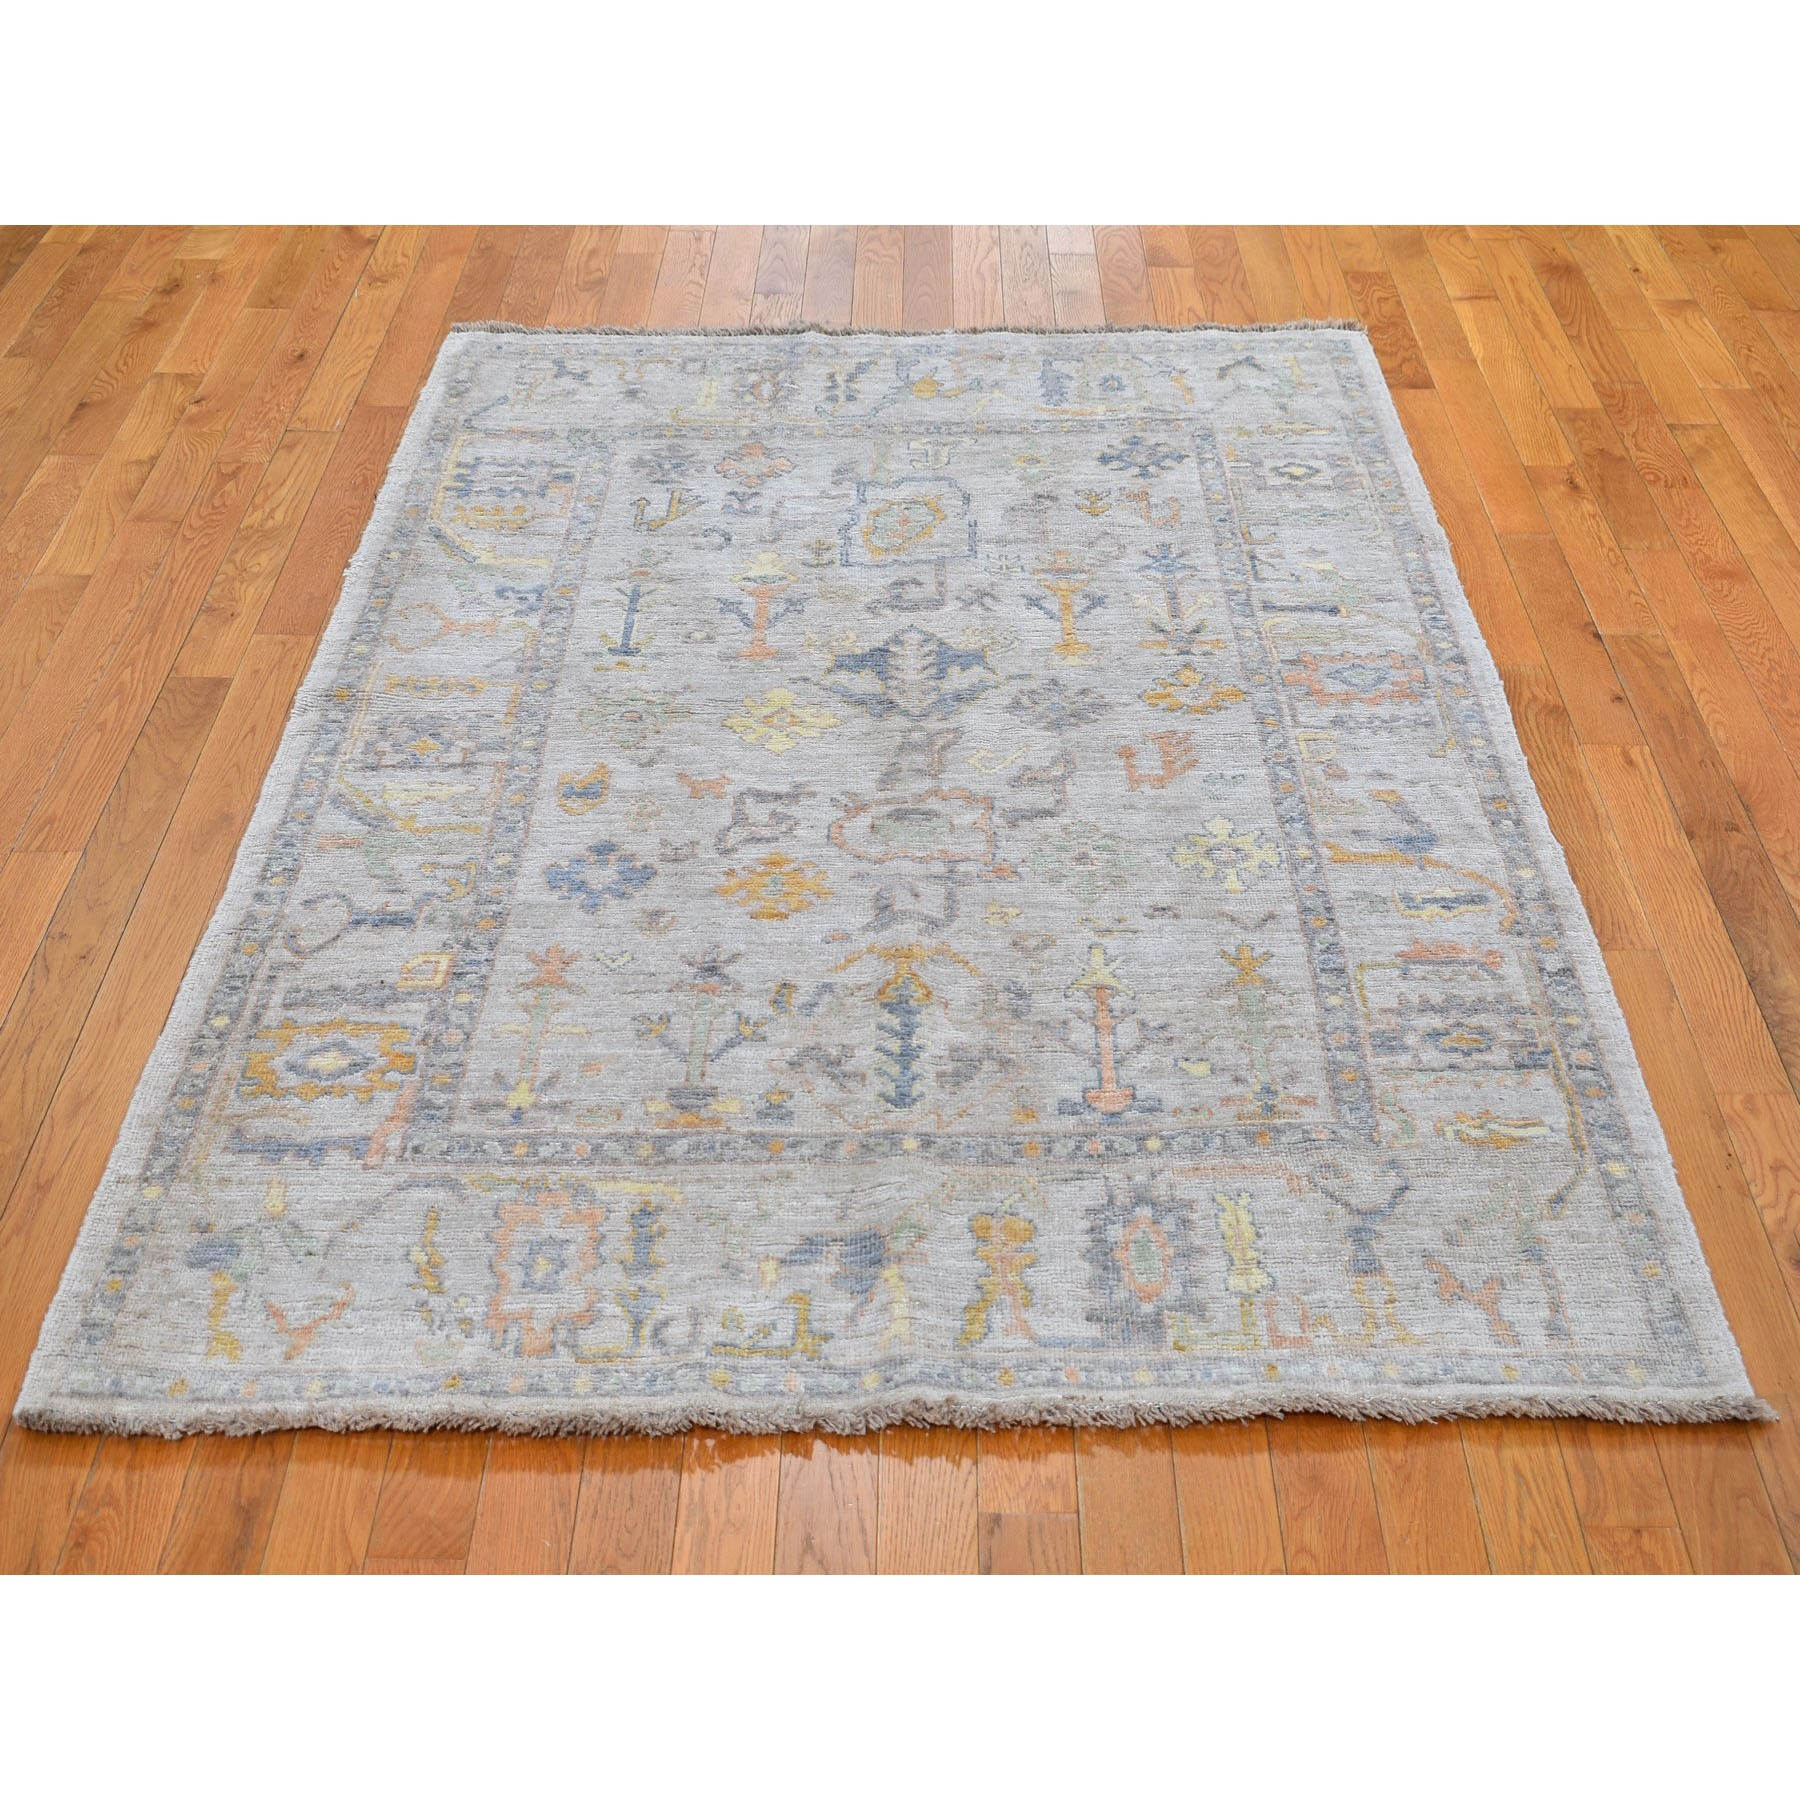 "4'10""x6'9"" Ivory Angora Oushak With Soft Velvety Wool Hand Knotted Oriental Rug"